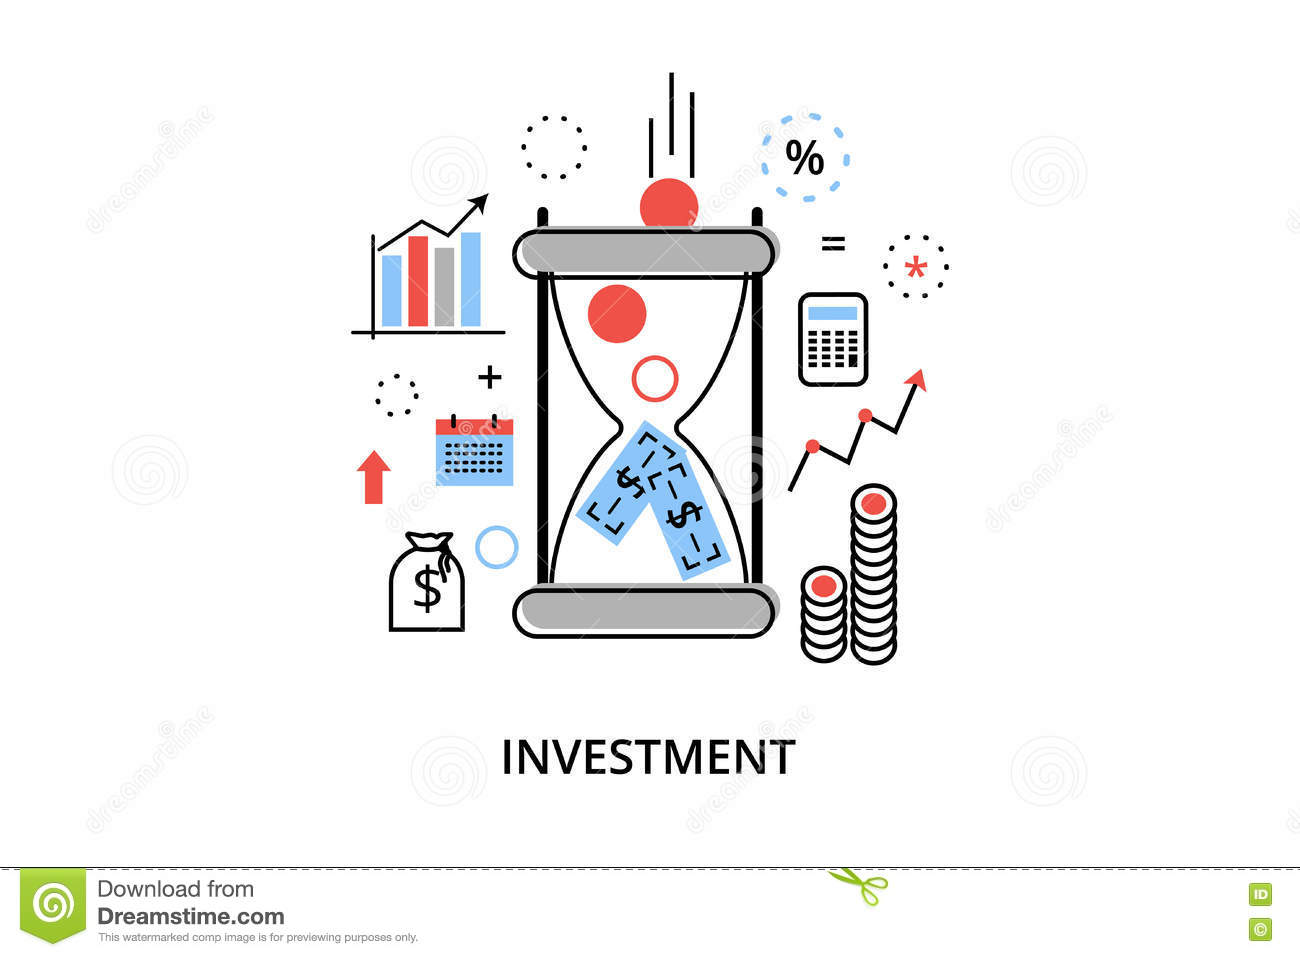 Modern flat thin line design vector illustration, infographic concept with icons of investing to business and finance process